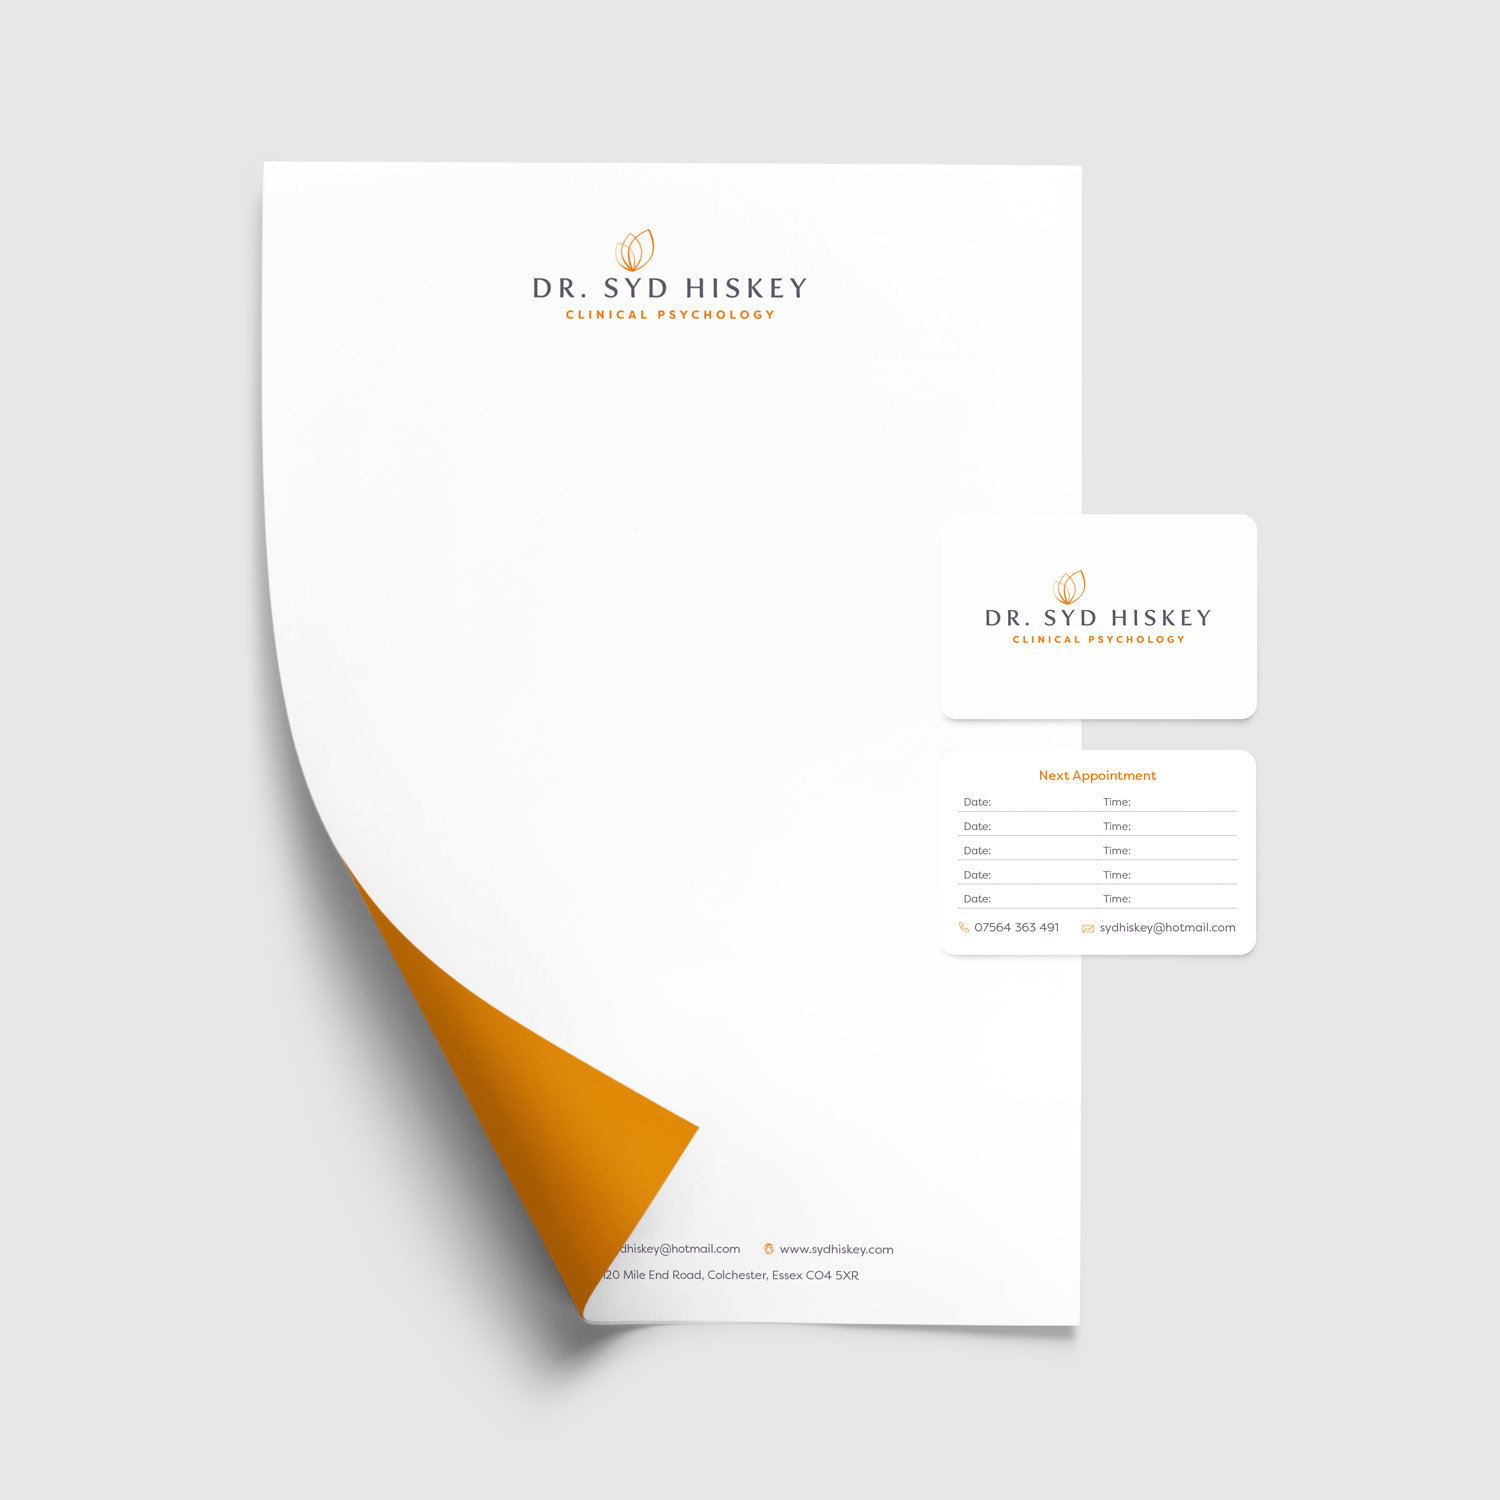 Letterhead and appointment cards design.